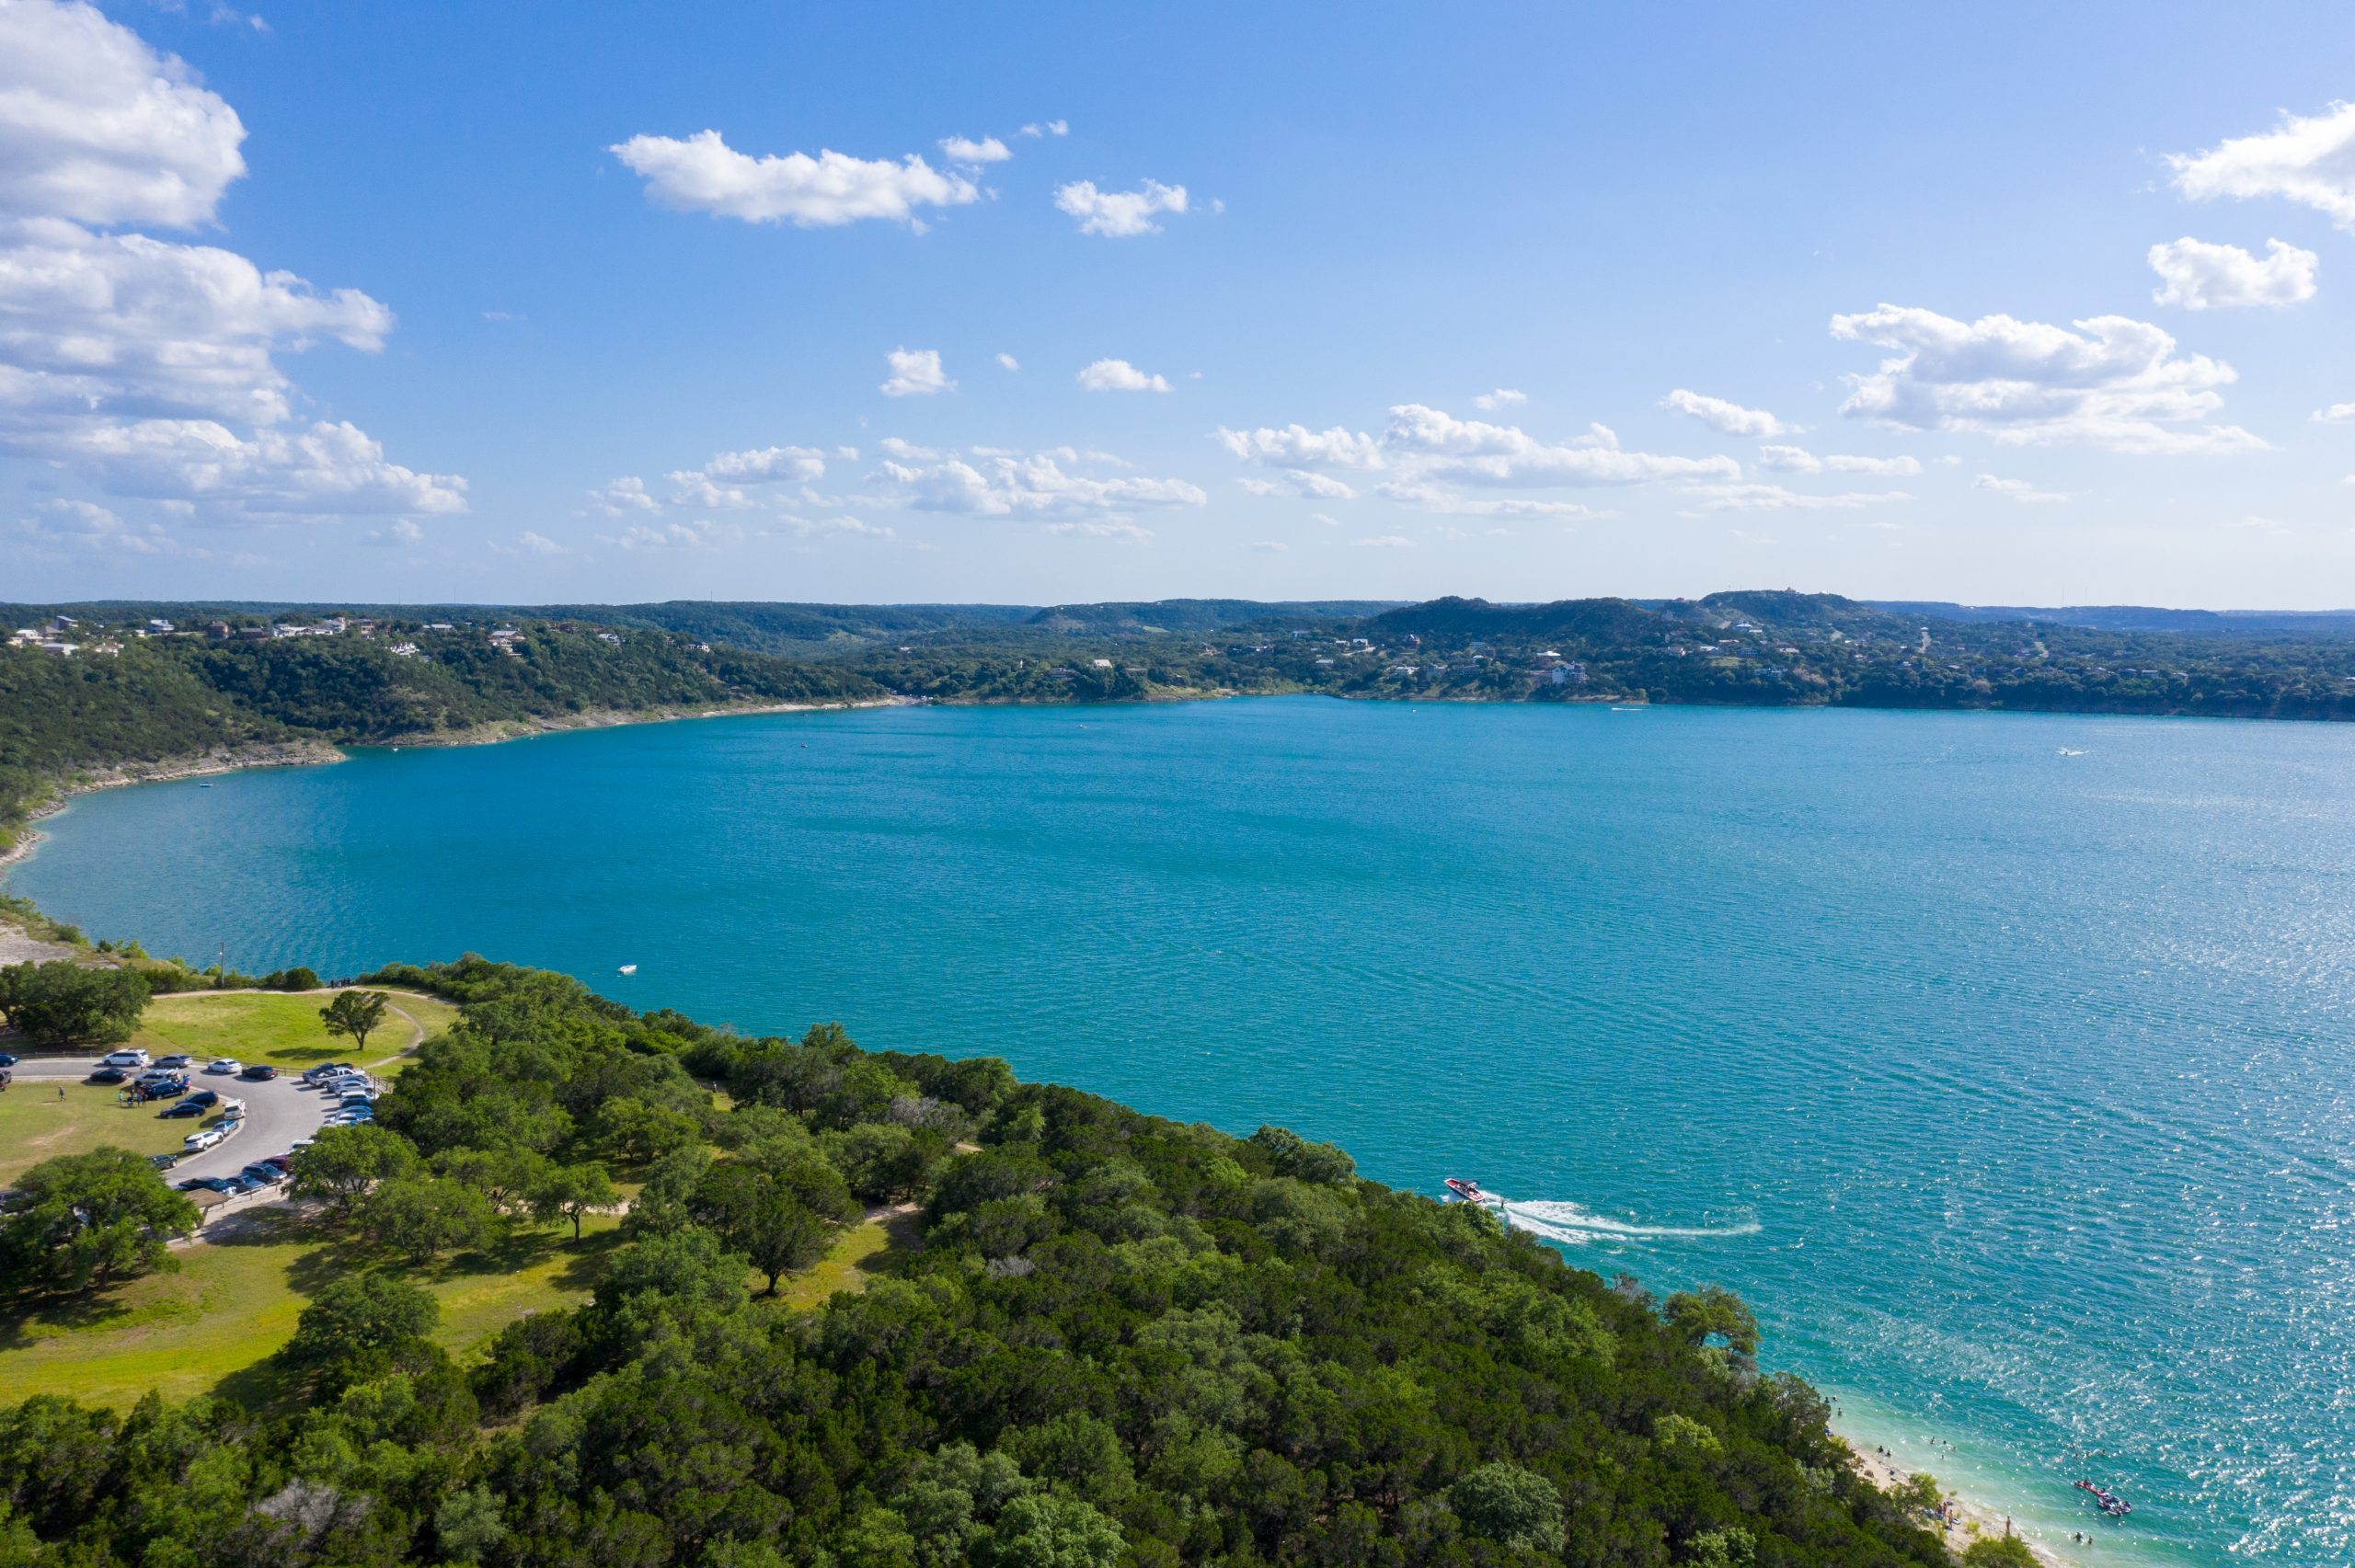 Canyon Lake TX as seen from above. Seeking out views like this are some of the best things to do canyon lake texas